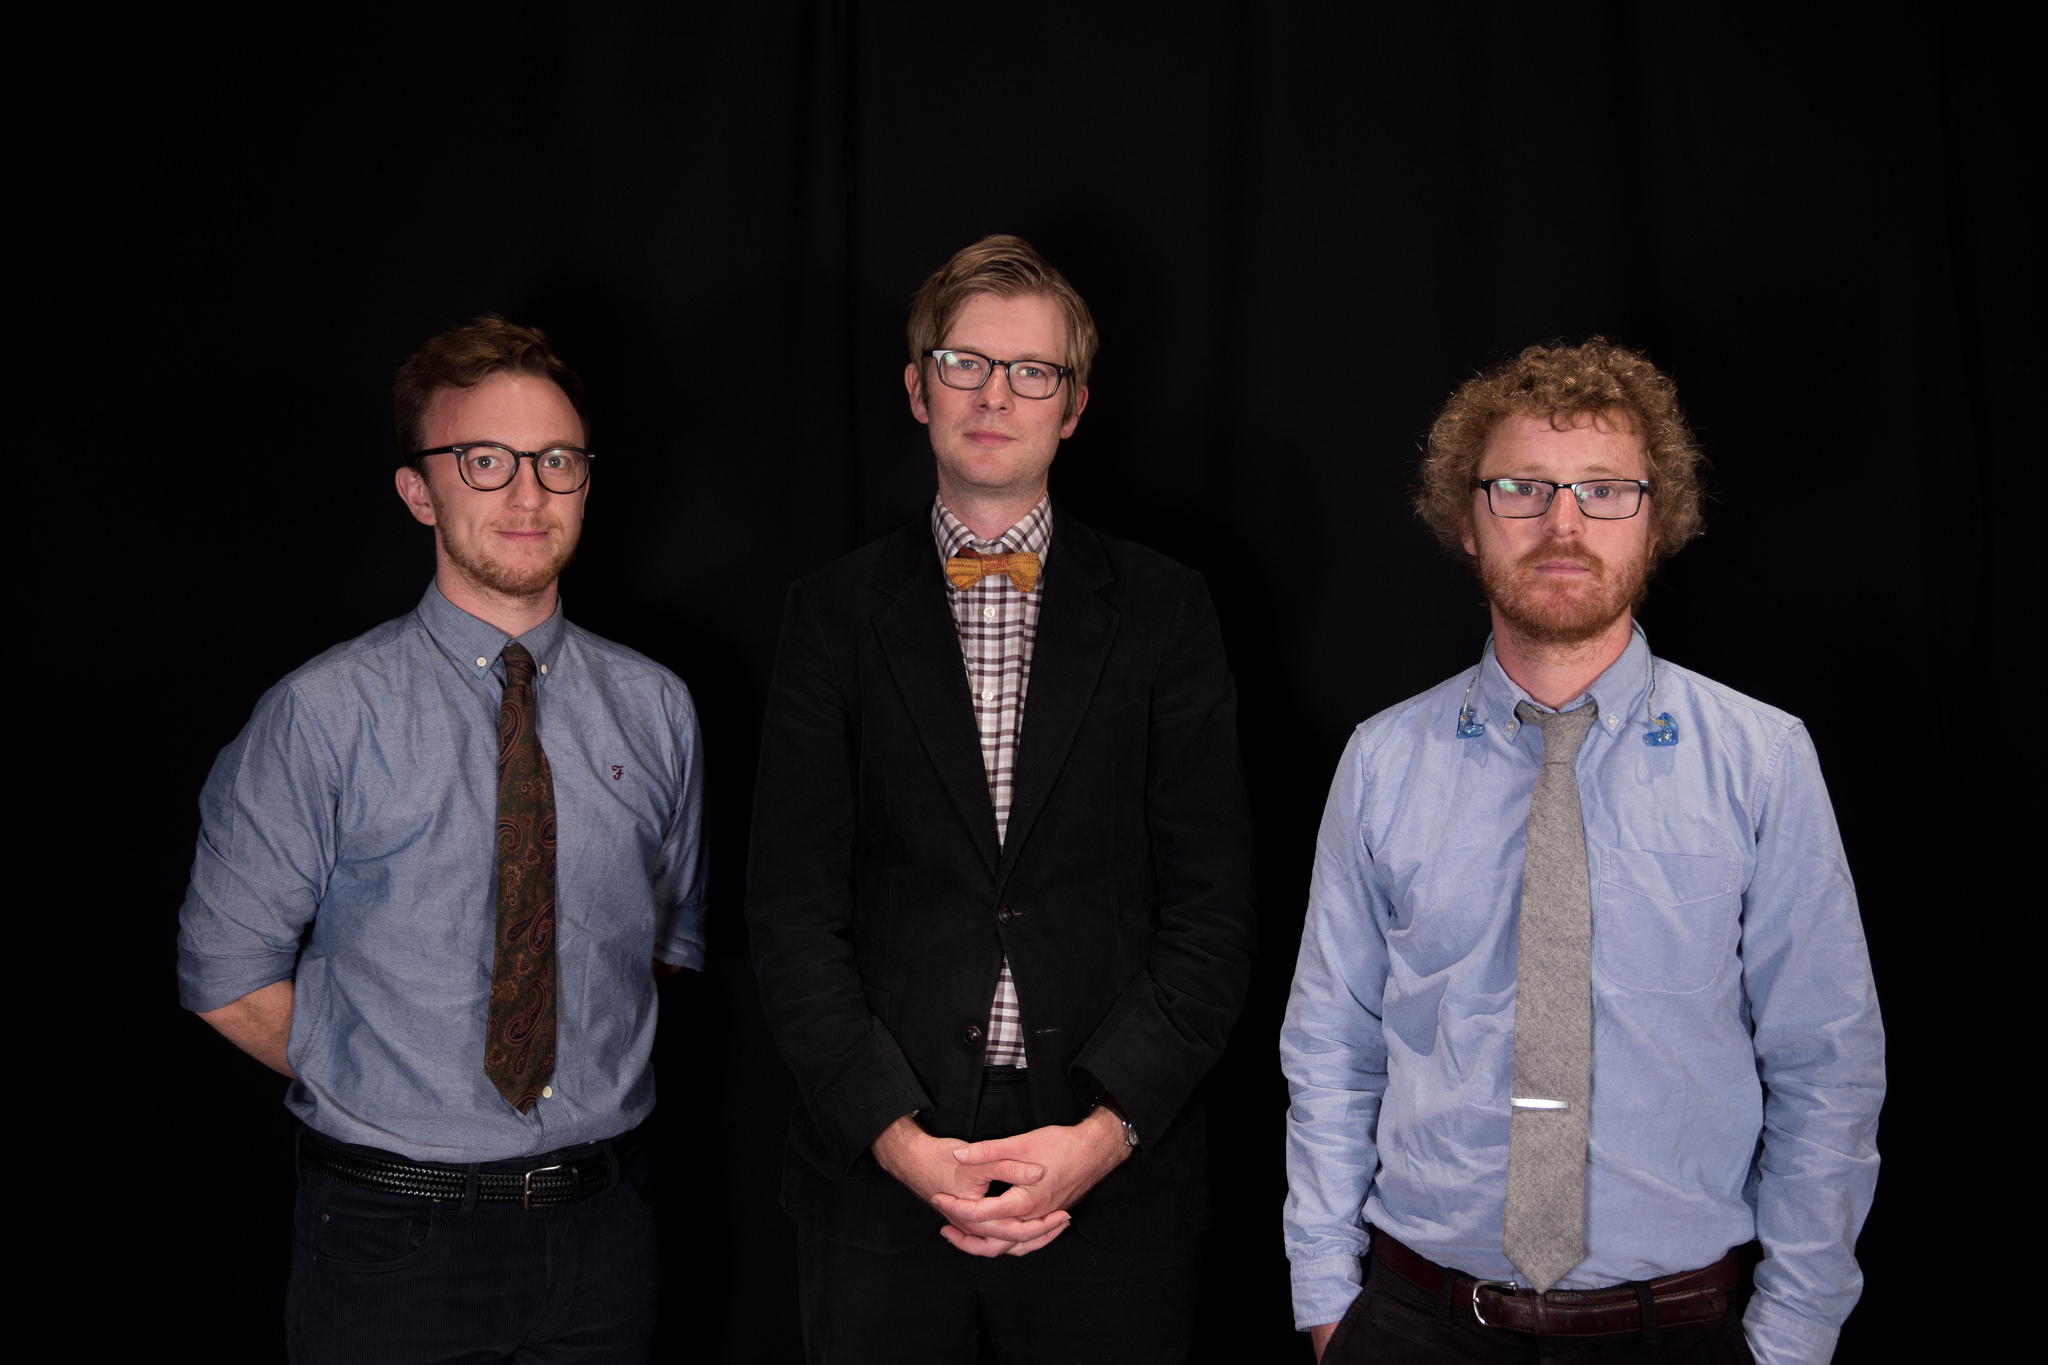 Public Service Broadcasting at WFUV